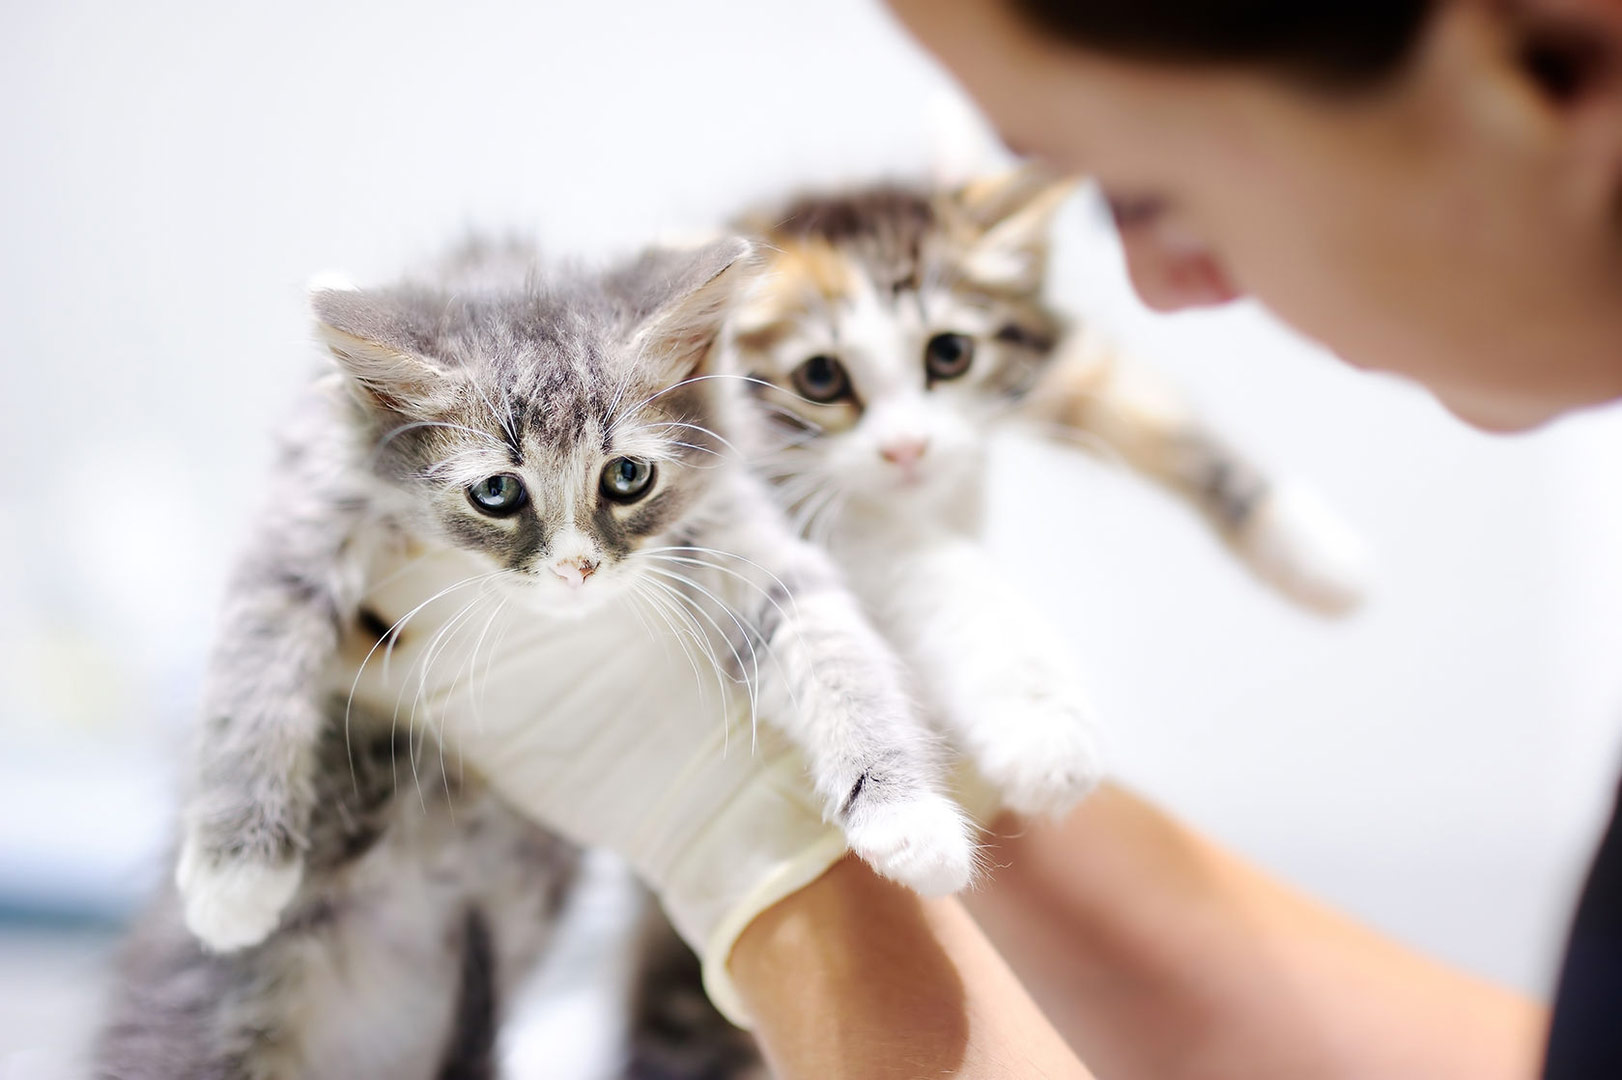 Kittens-At-The-Vets